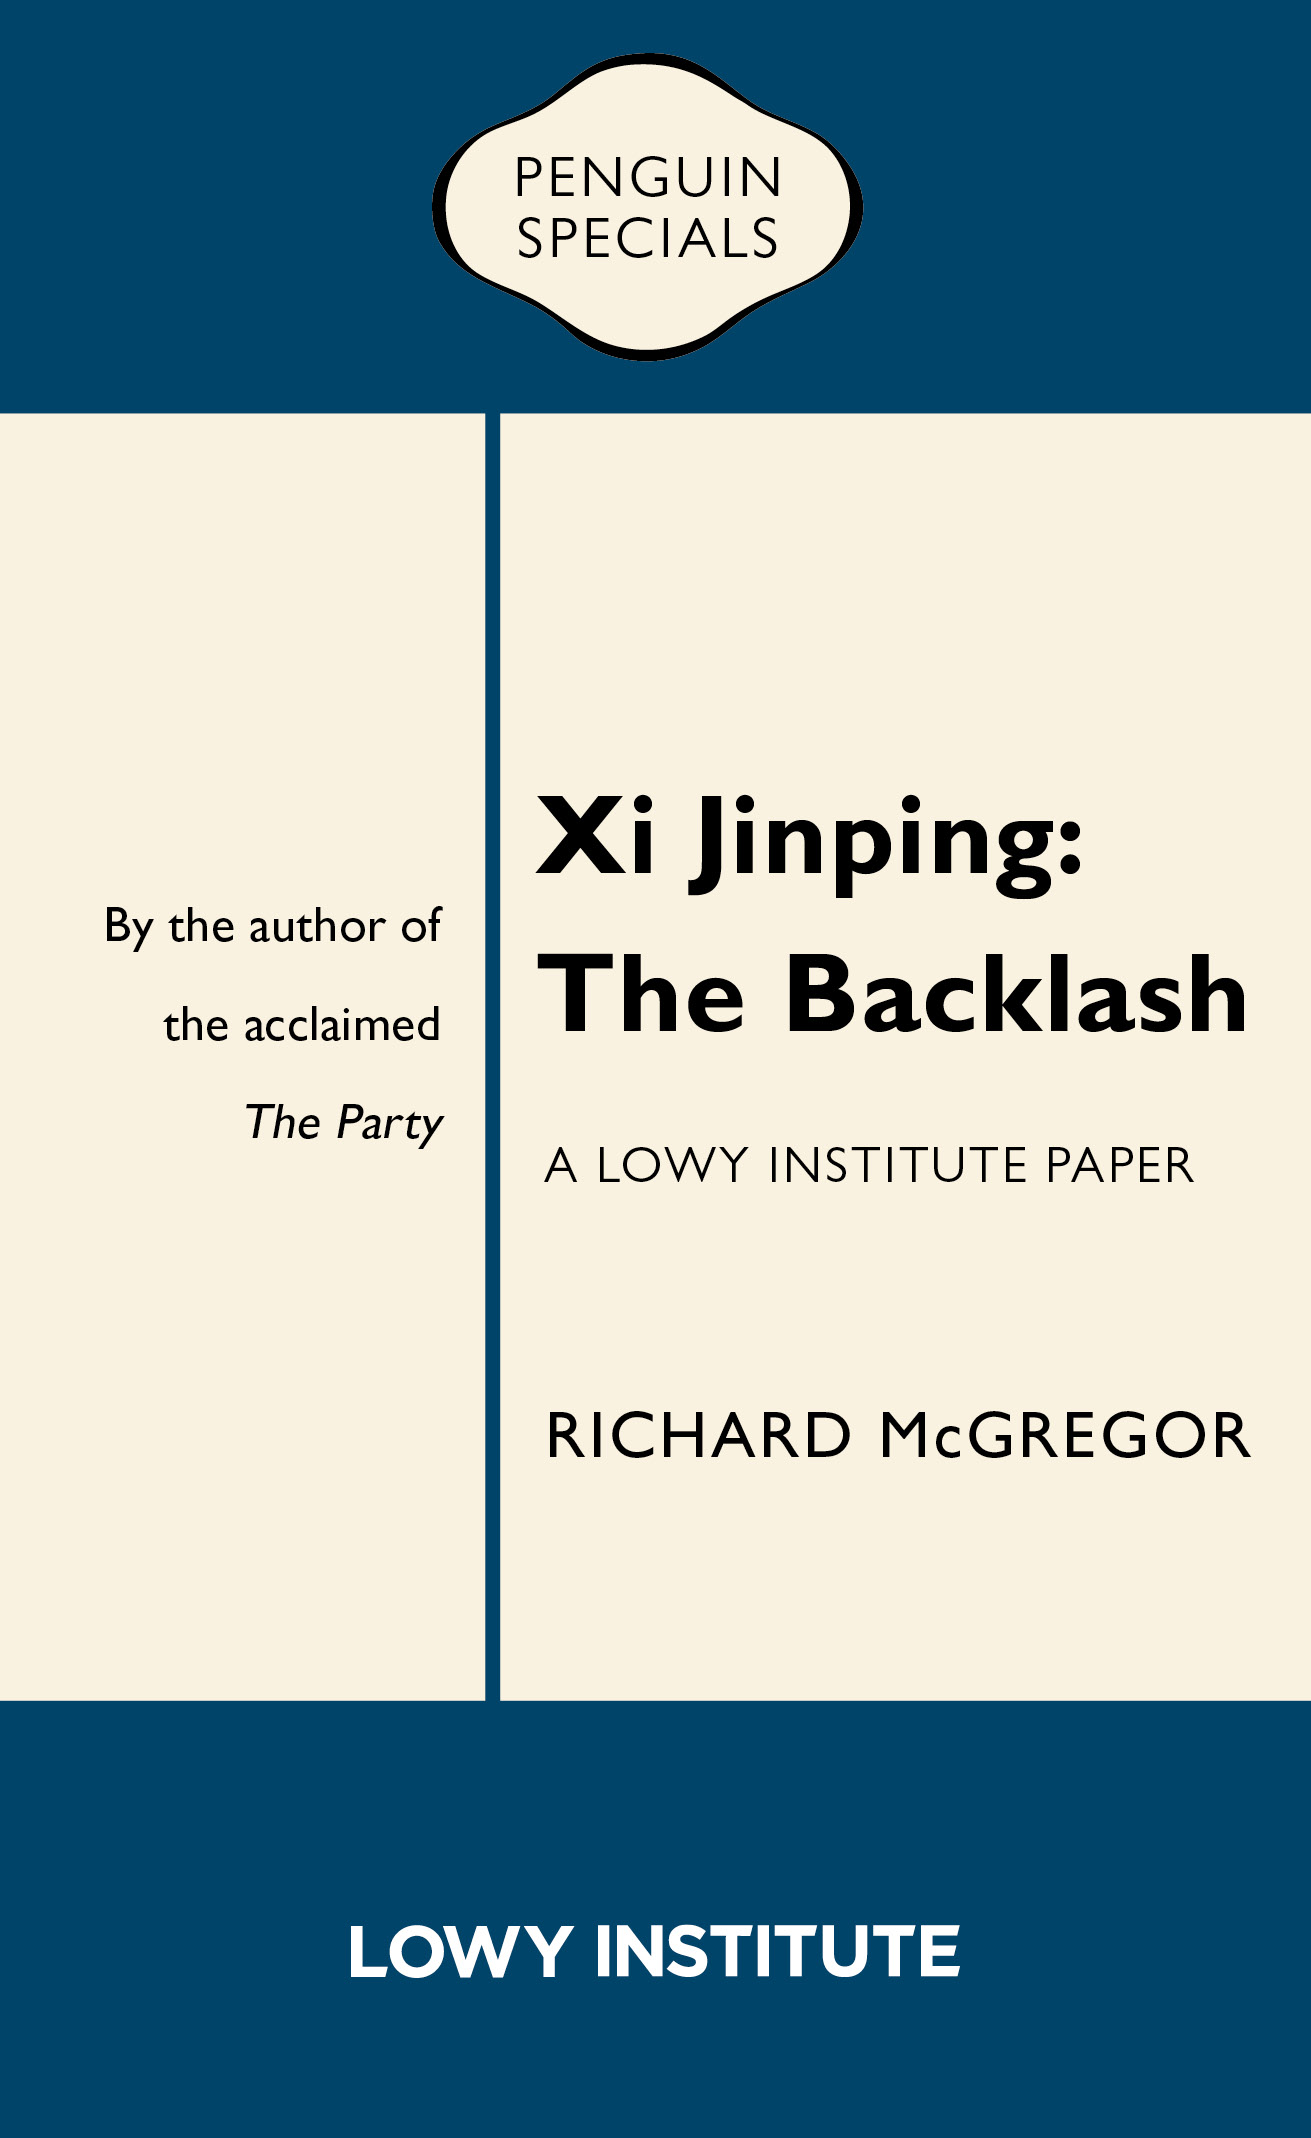 Xi Jinping: The Backlash front cover image